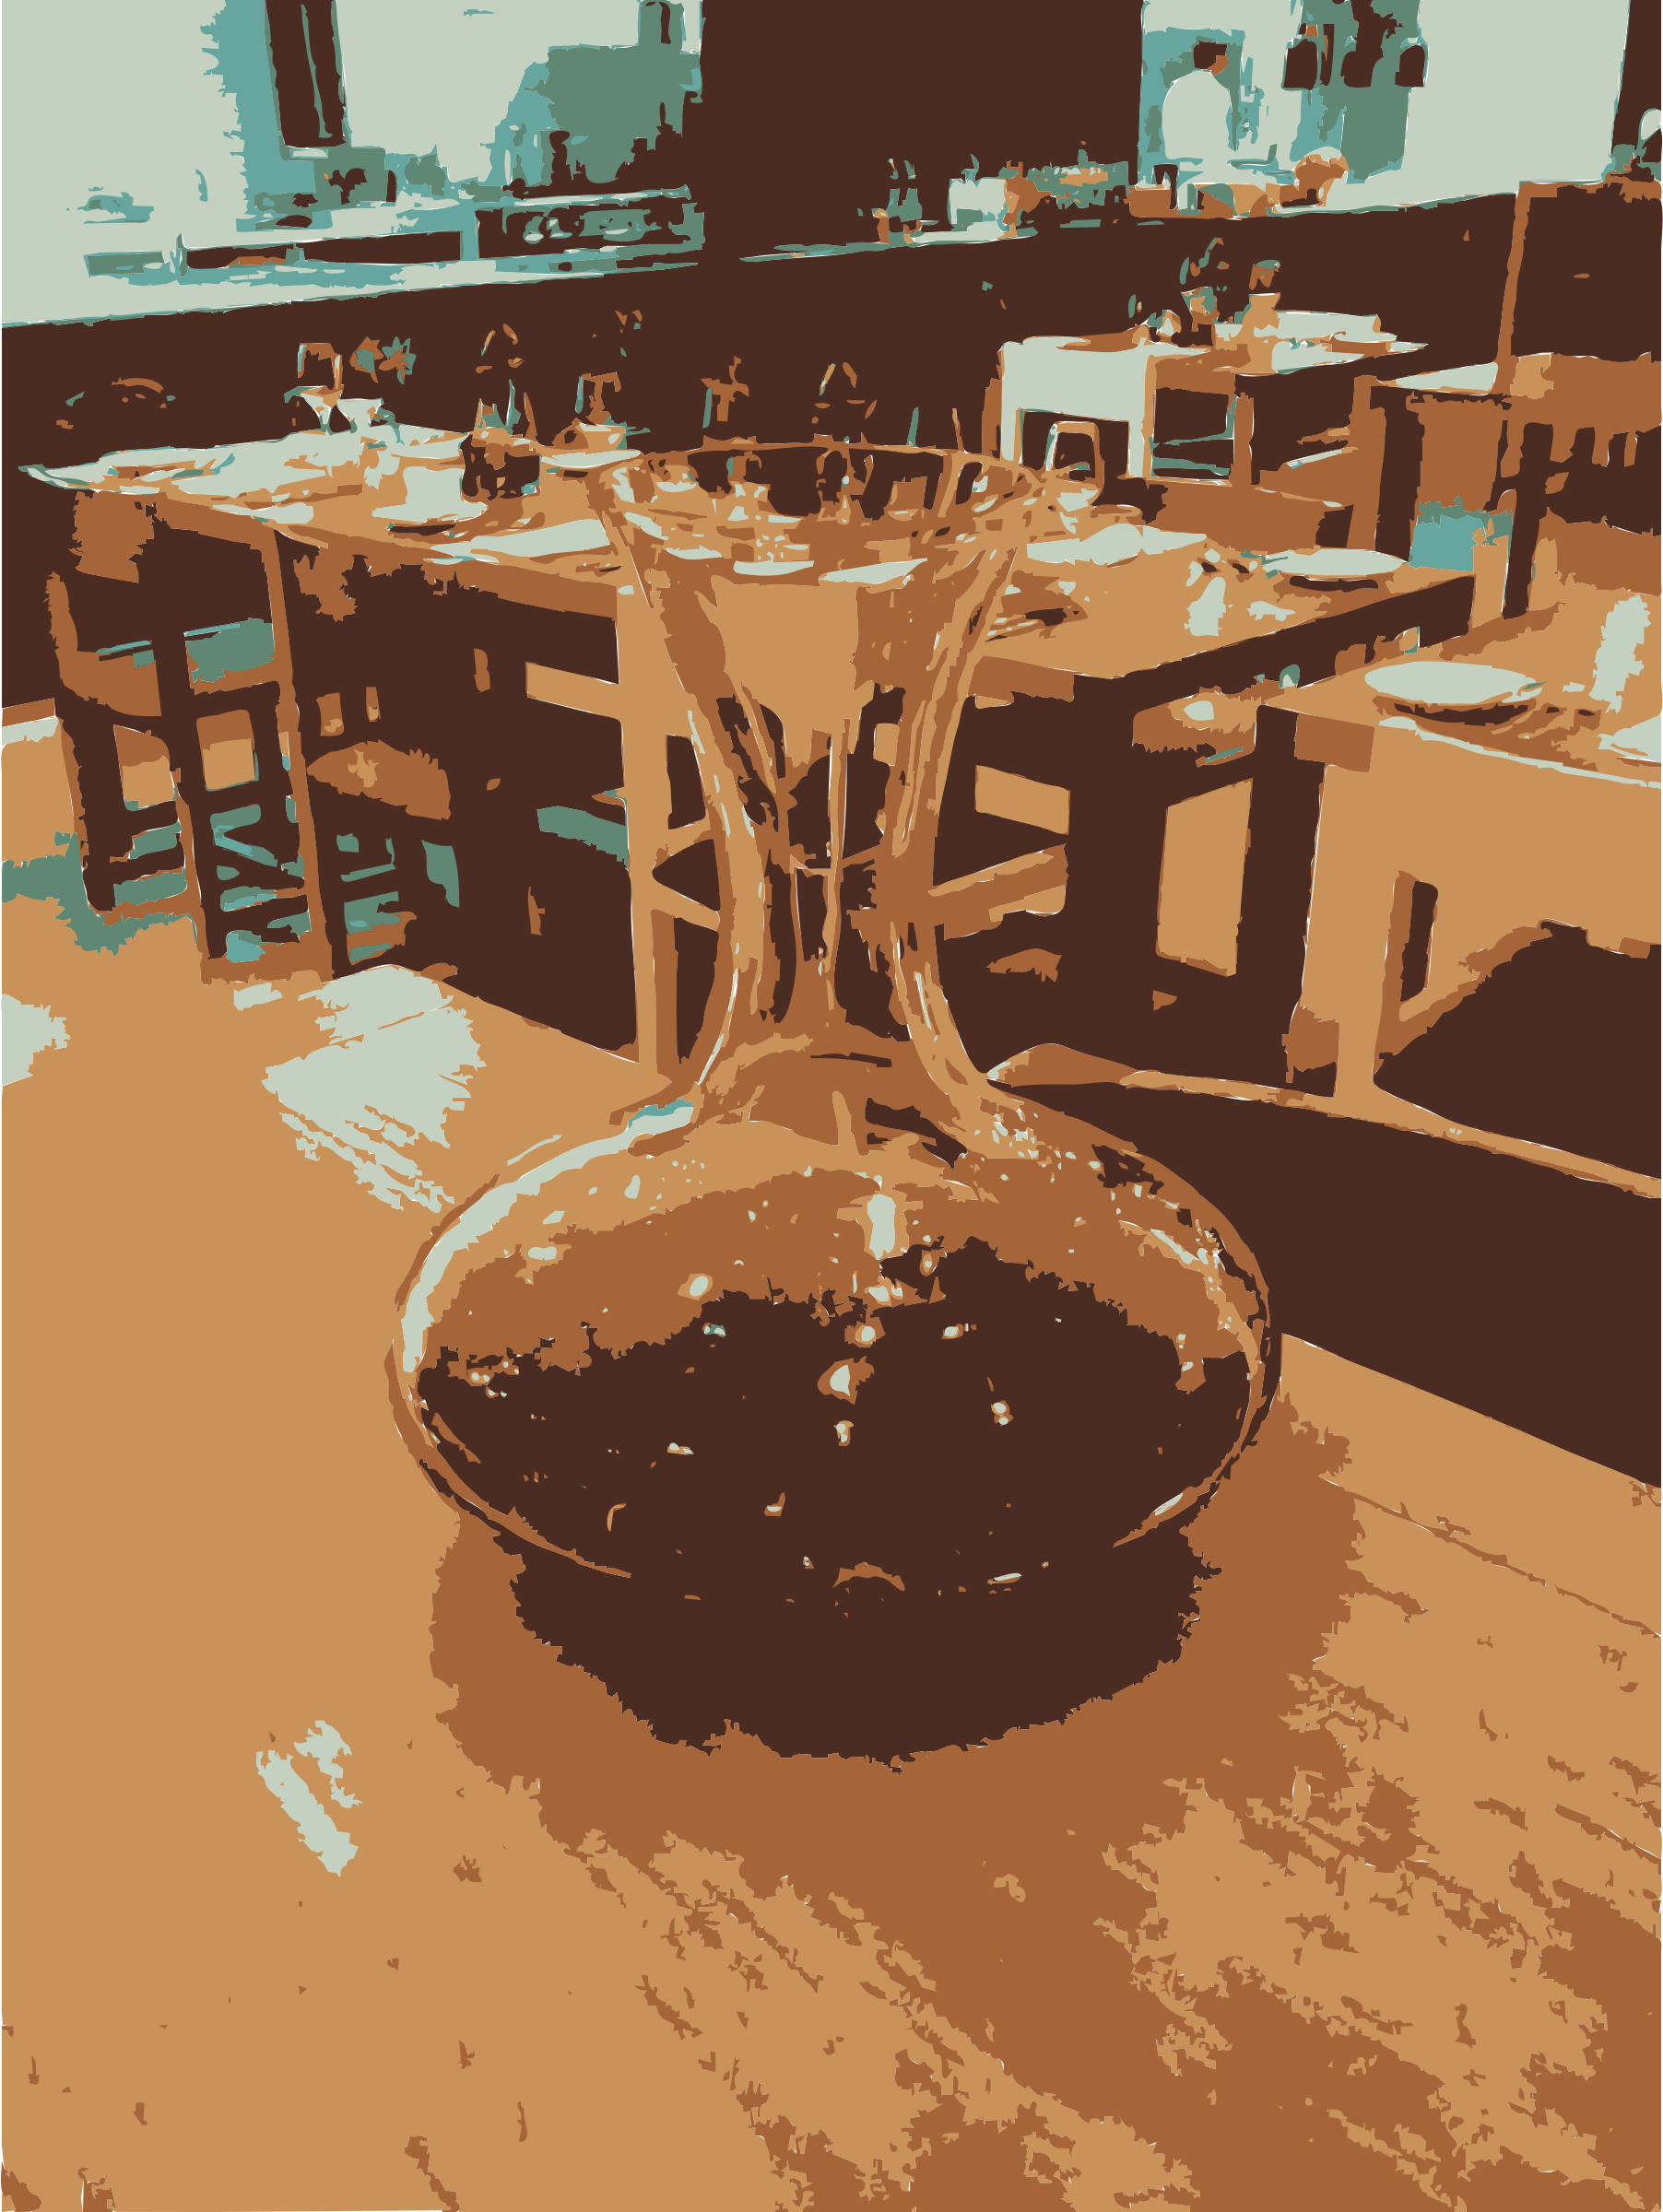 Caraffe of wine by rejon